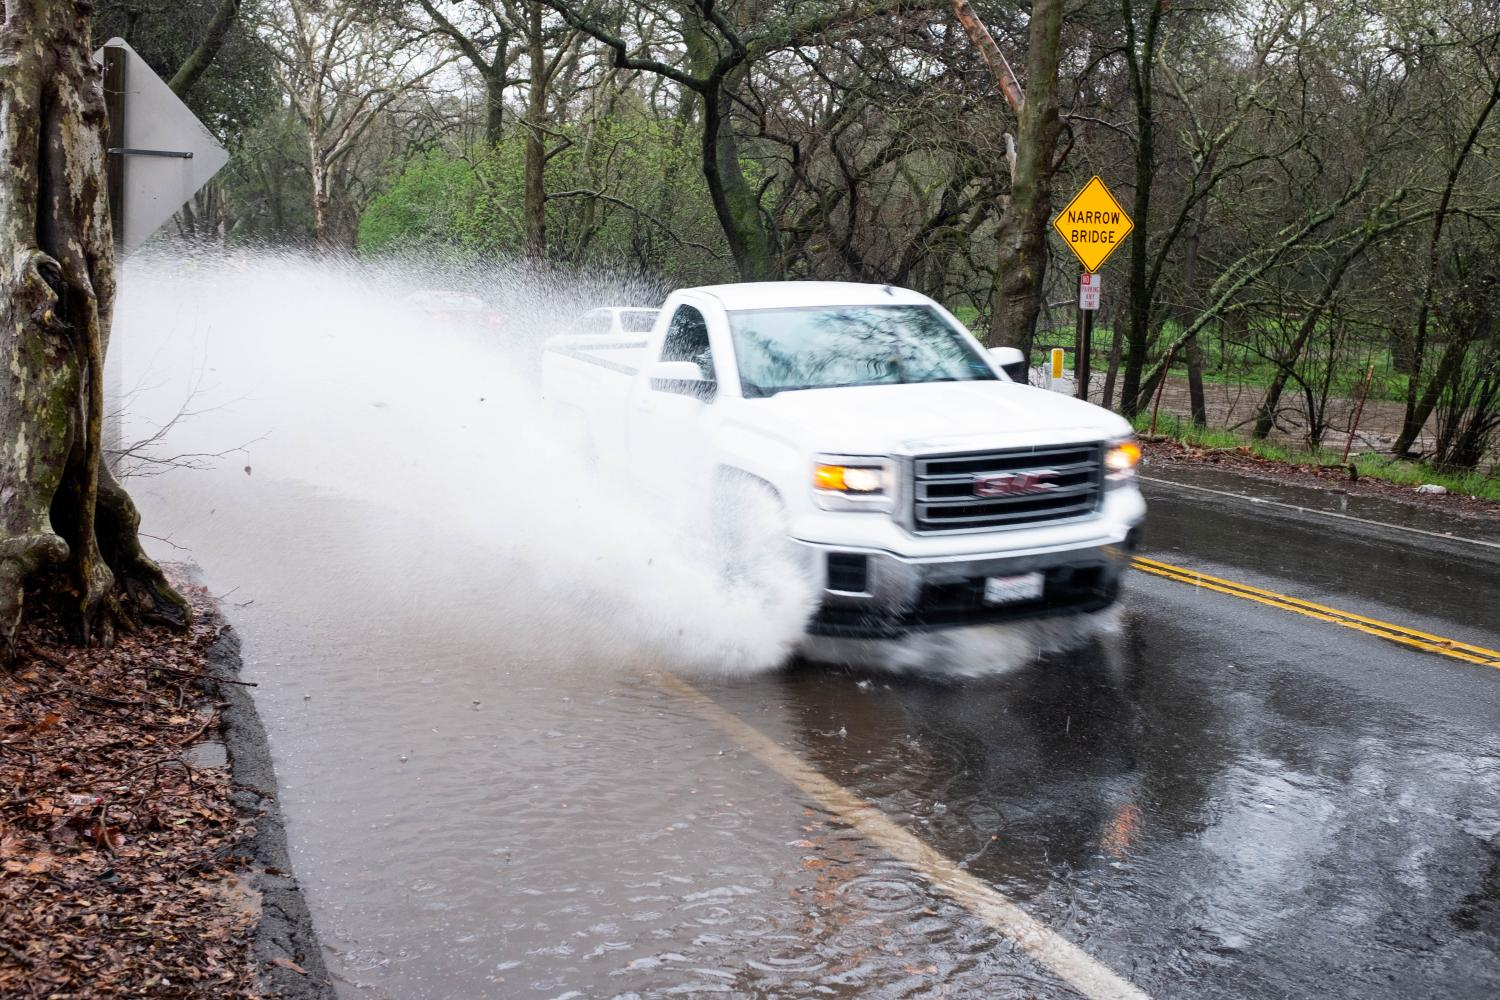 ARC monitors creek levels for flooding   The American River